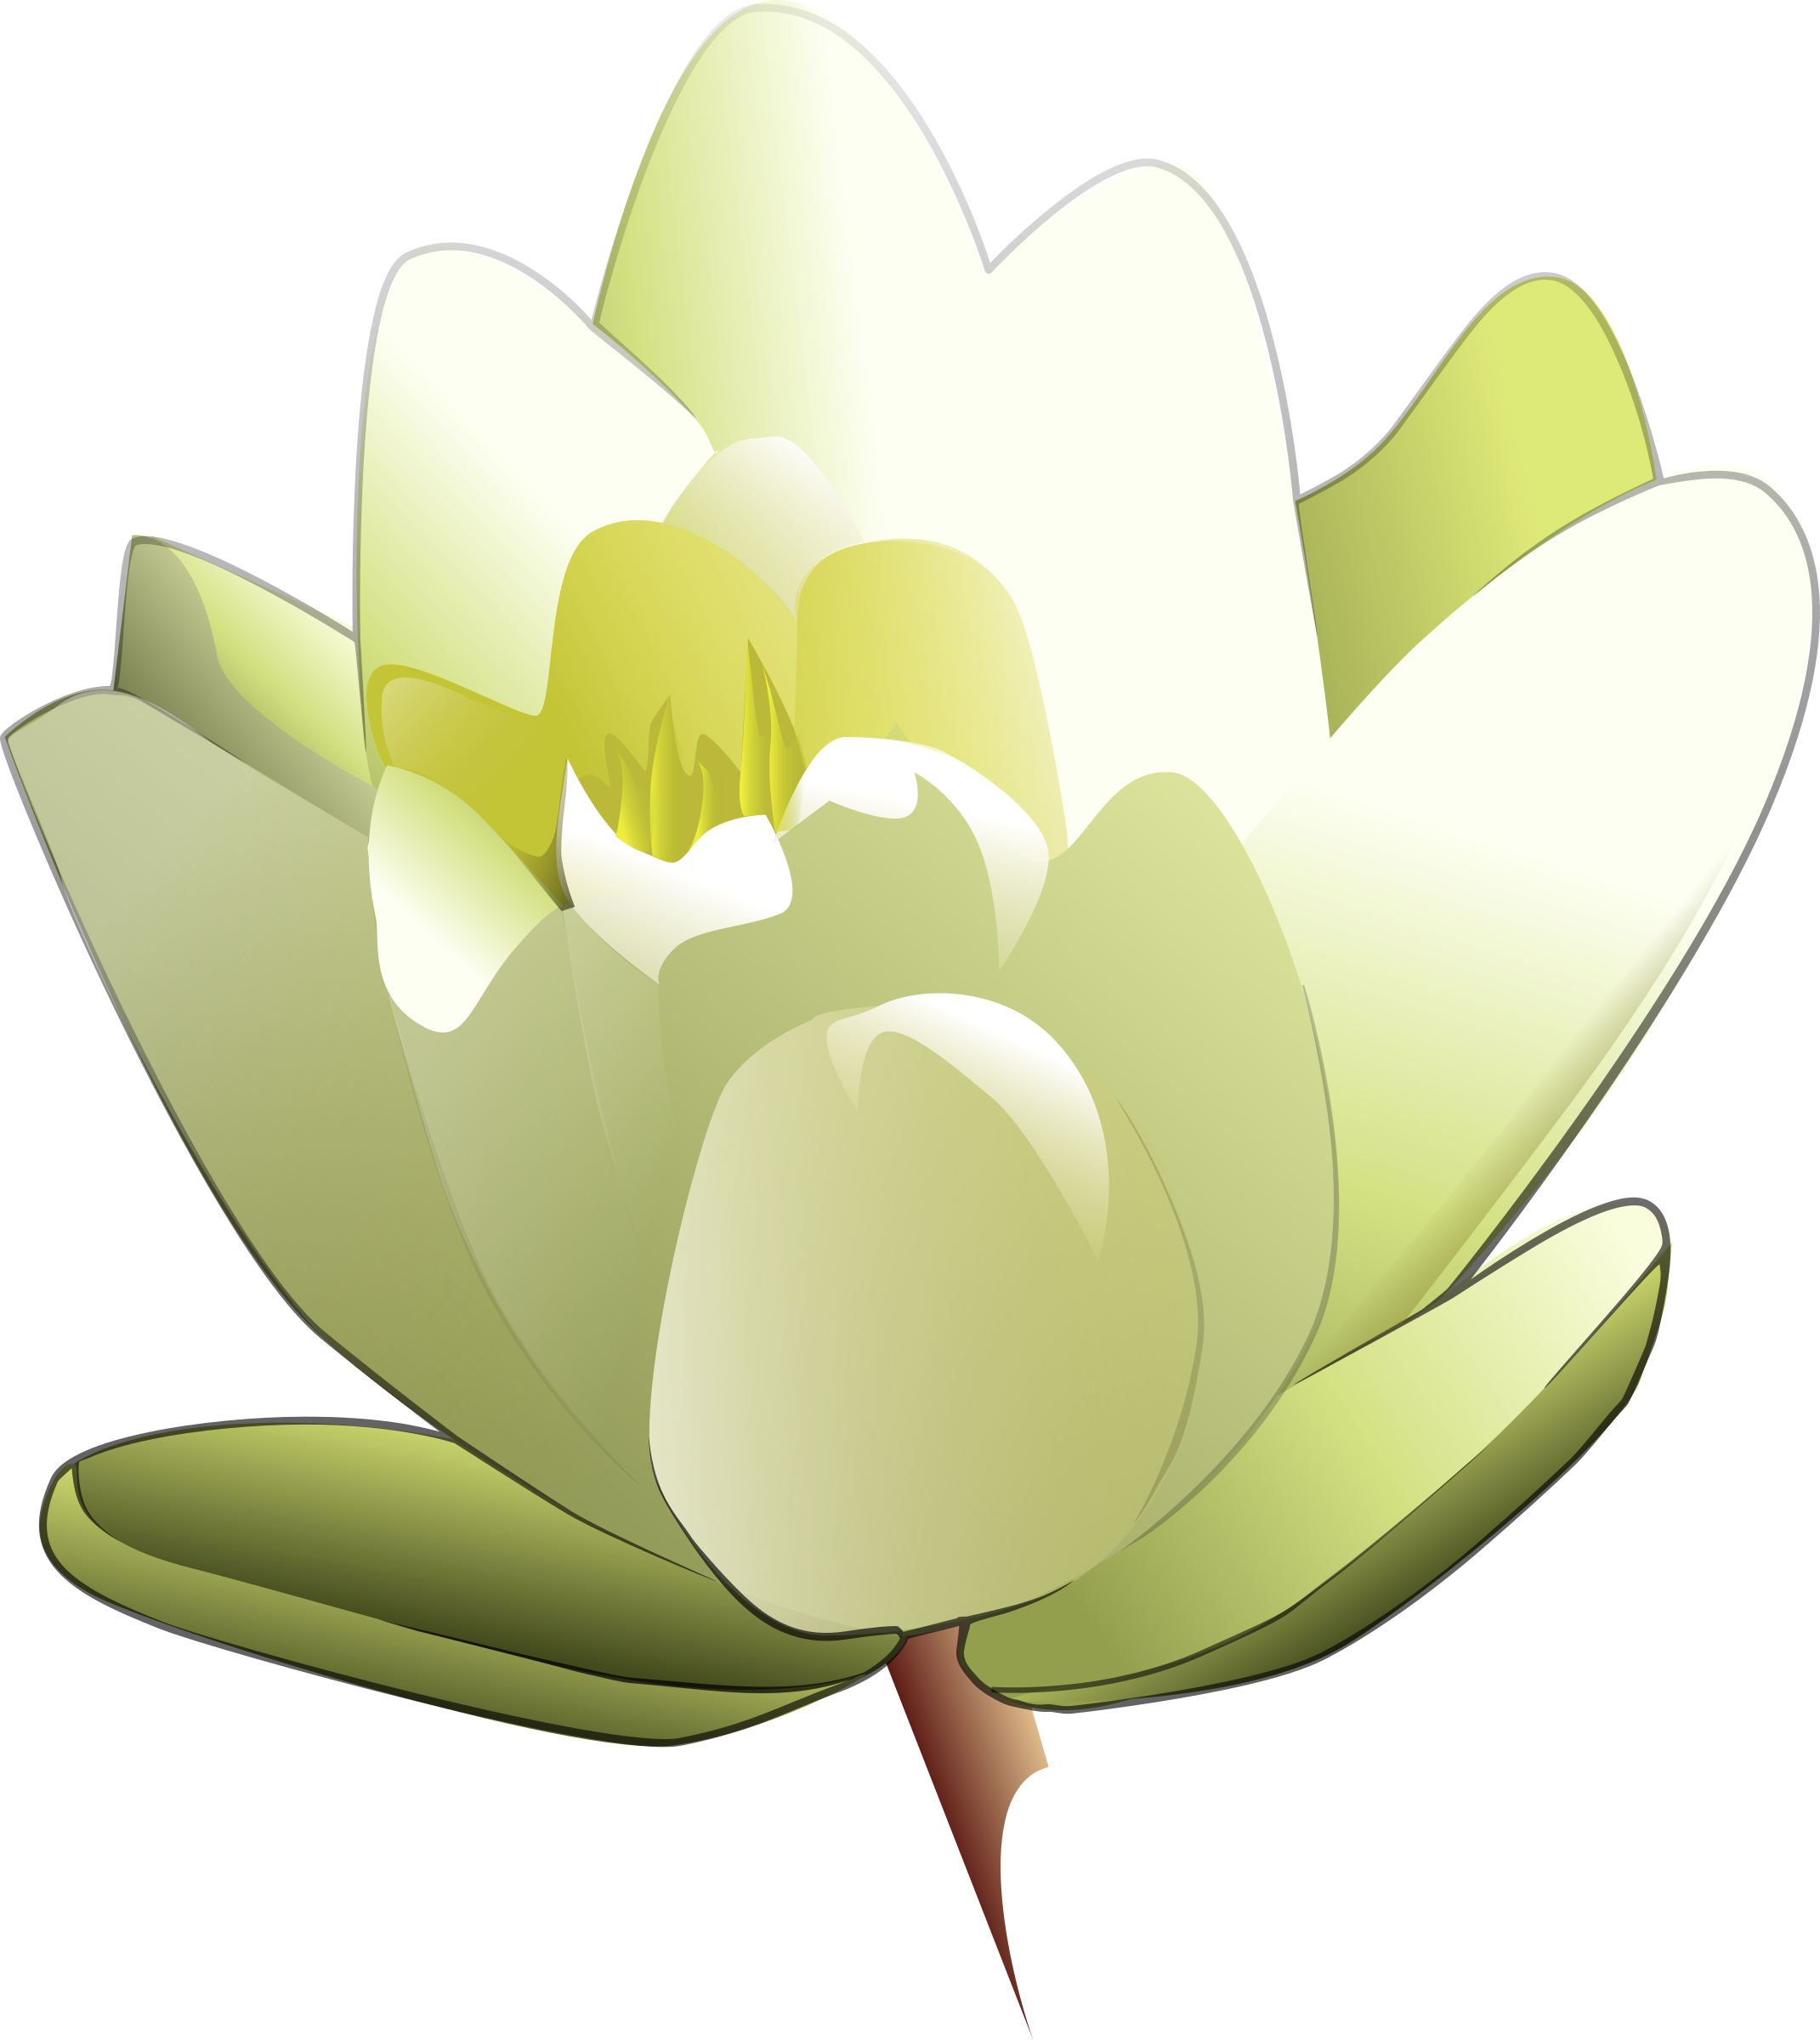 Lily transparent animated. Clipart water big image